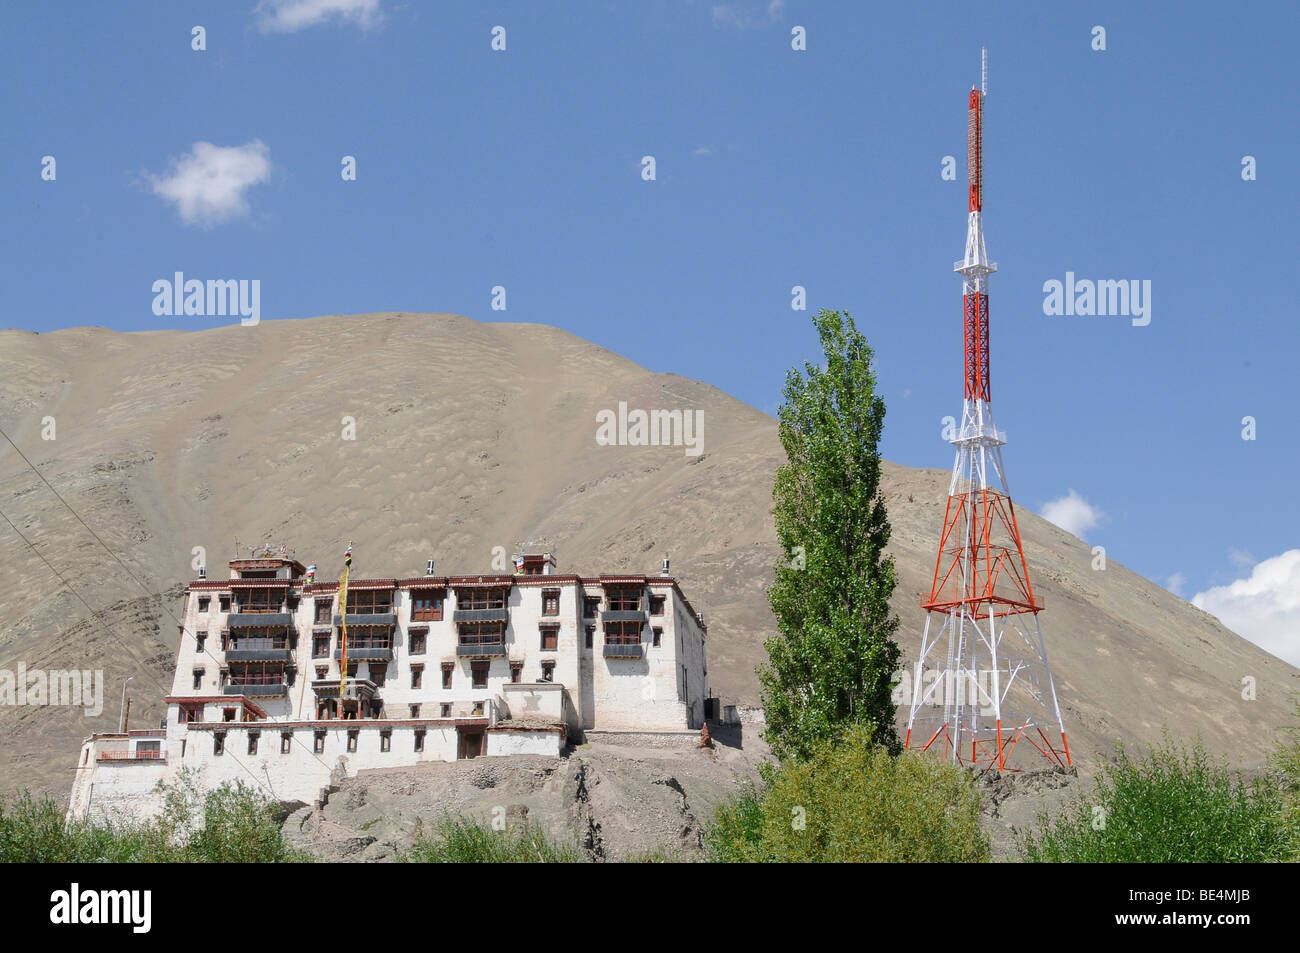 Stok Palace with the radio station of Ladakh, Northern India, the Himalayas, Asia - Stock Image